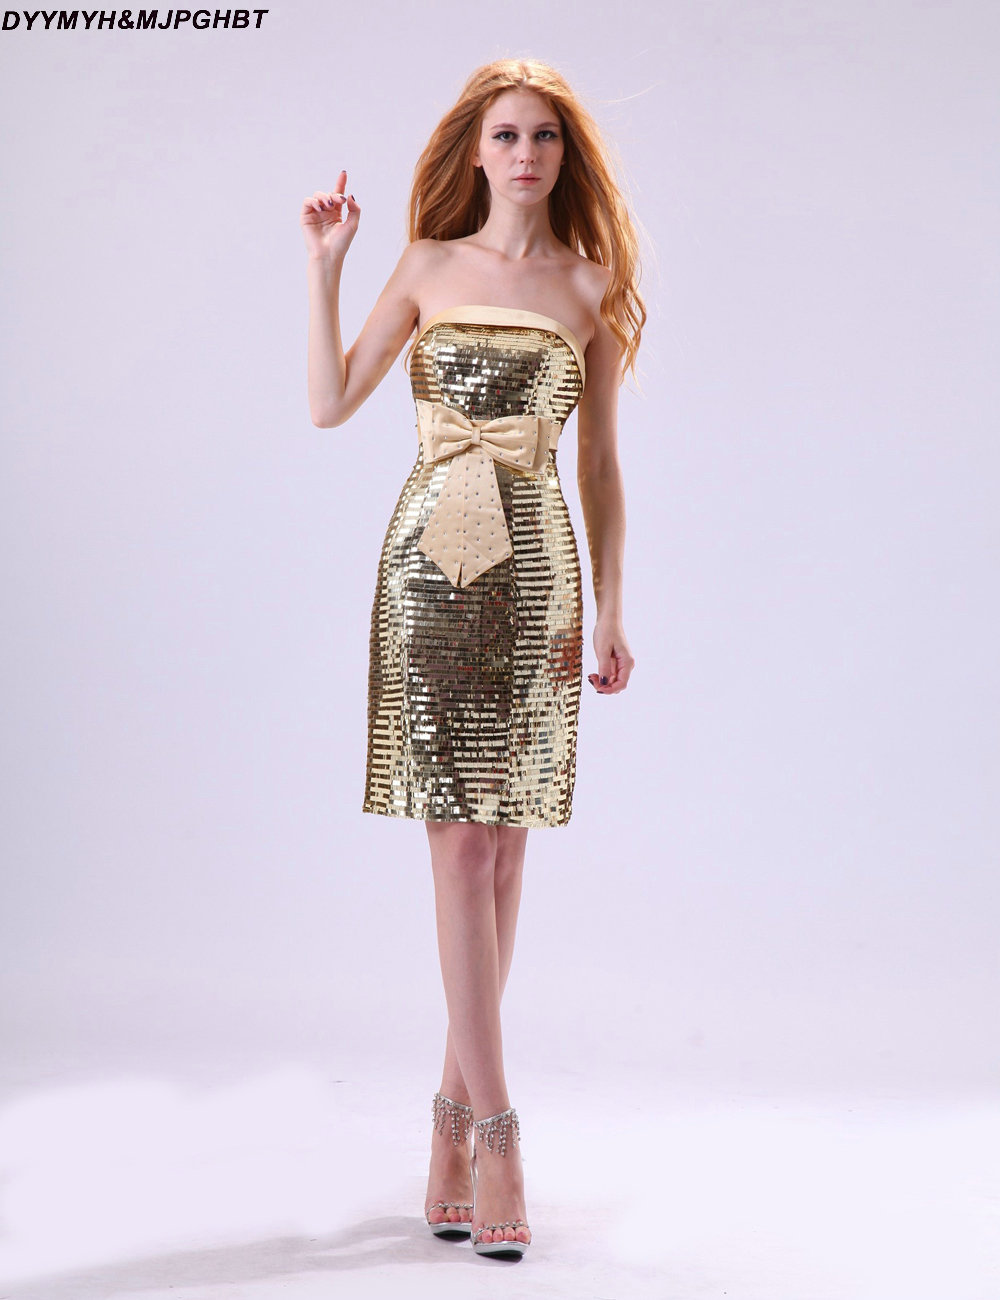 Compare prices on shiny gold sequin bridesmaid dress online shiny blingbling sequin bridesmaid dresses lower back knee length with bow belt gold maid of honor ombrellifo Choice Image